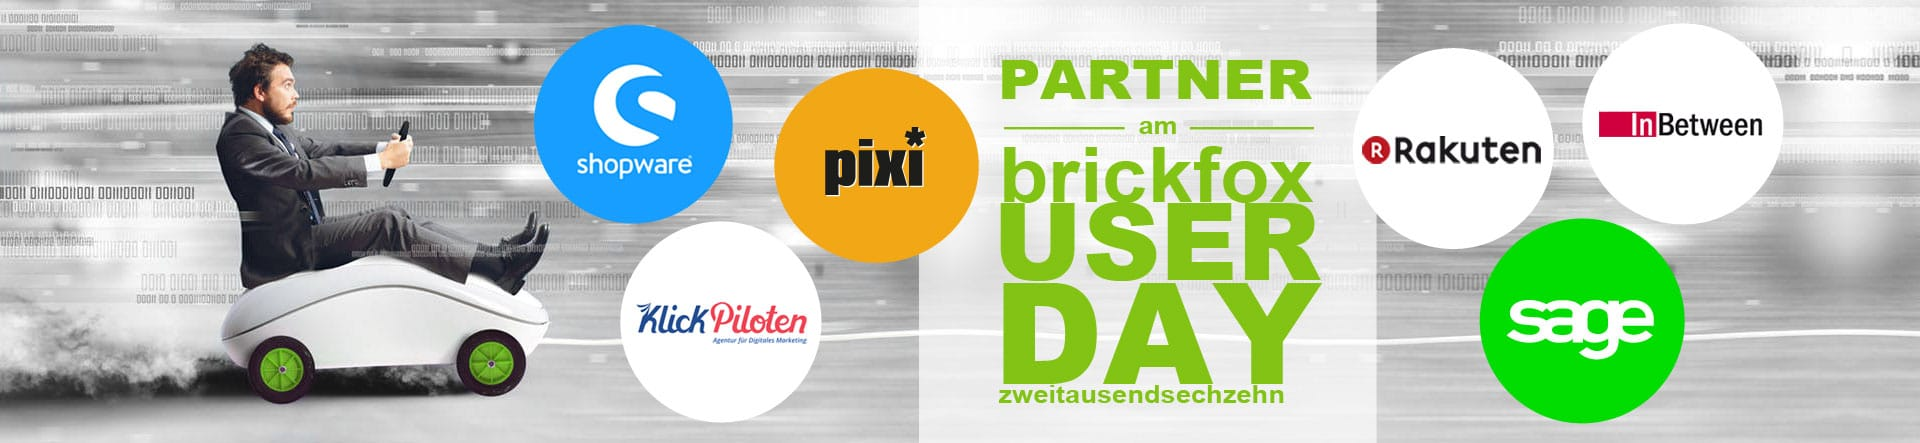 Slider-brickfox-USER-DAY-2016-Partner-04